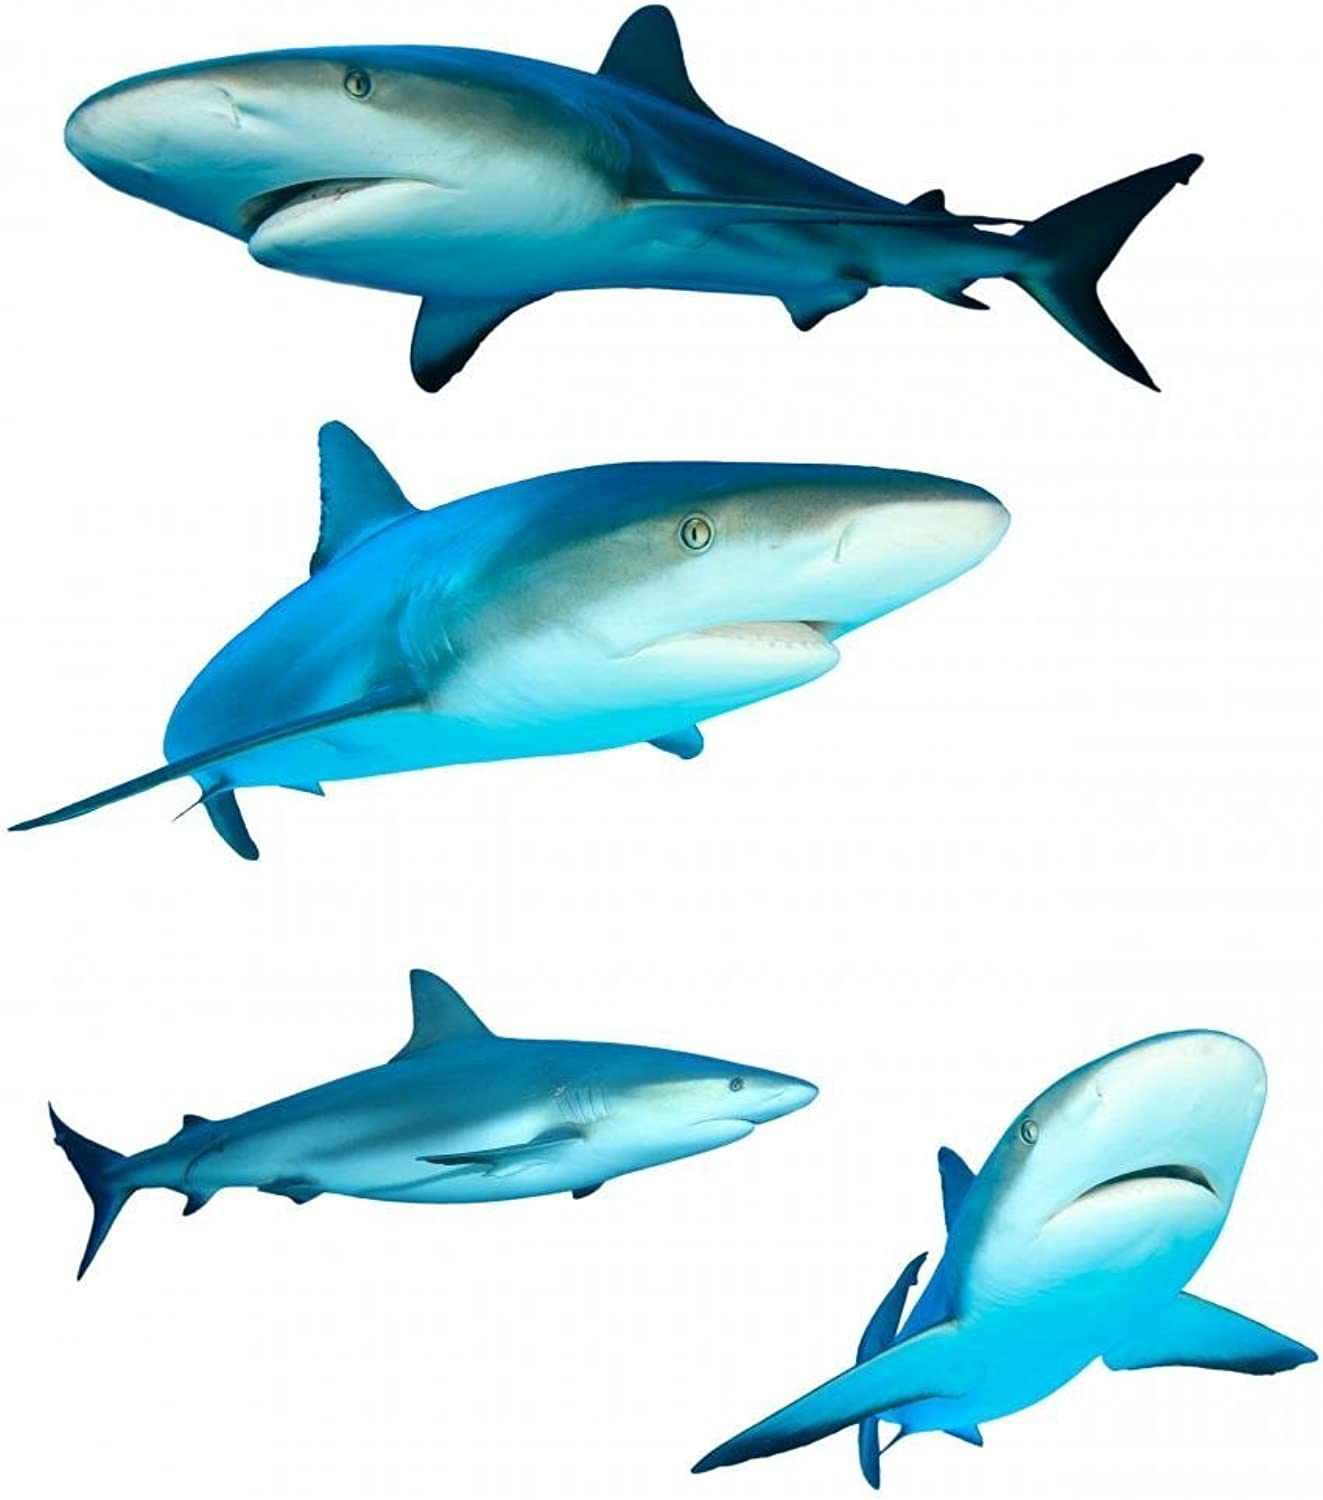 Four Reef Sharks Wall Decal Sticker Set Wallmonkeys Individual Peel and Stick Graphics on a (24 in H x 22 in W) Sticker Sheet WM130947